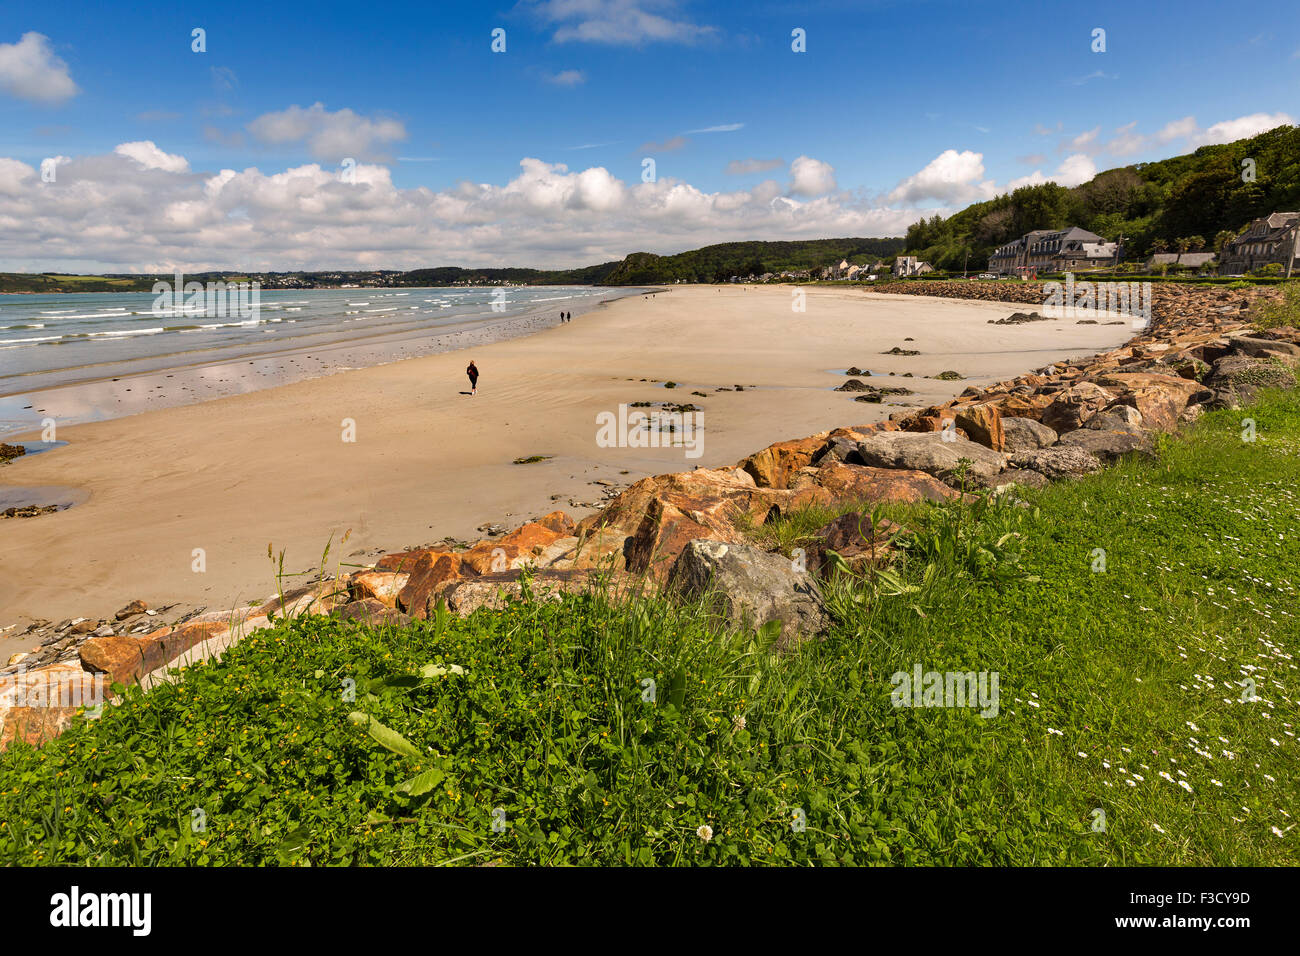 Beach Plestin-les-Grèves French Brittany France Europe - Stock Image